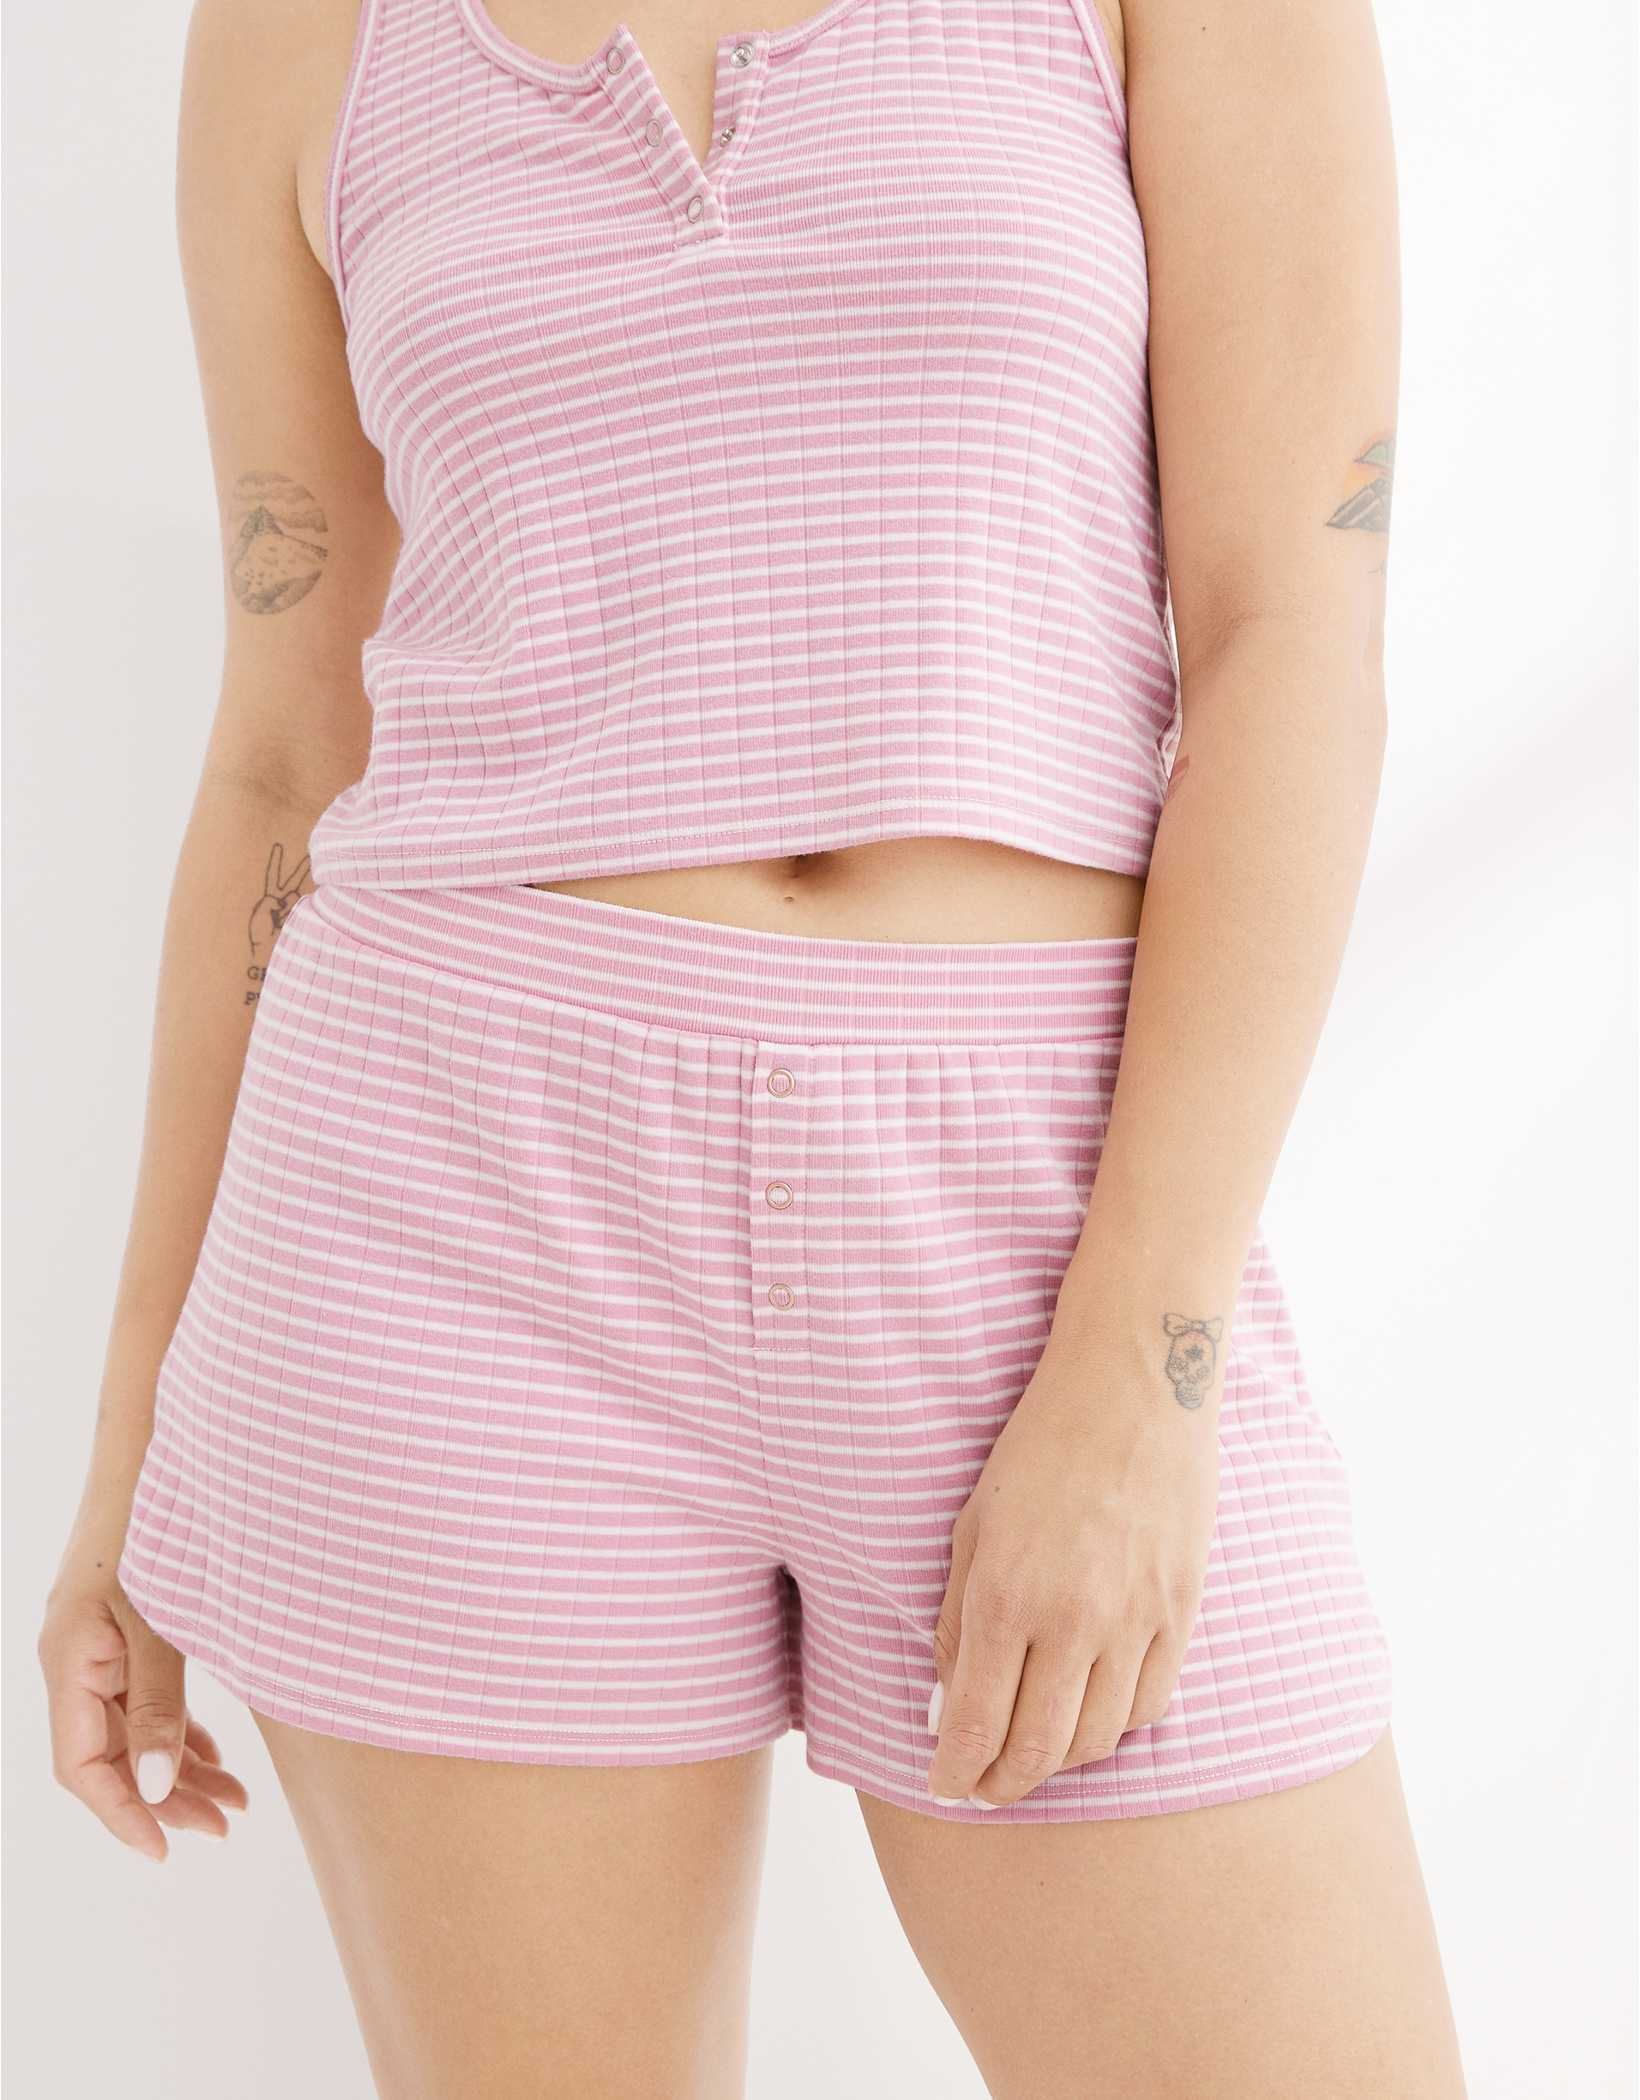 Aerie Ribbed Boxer